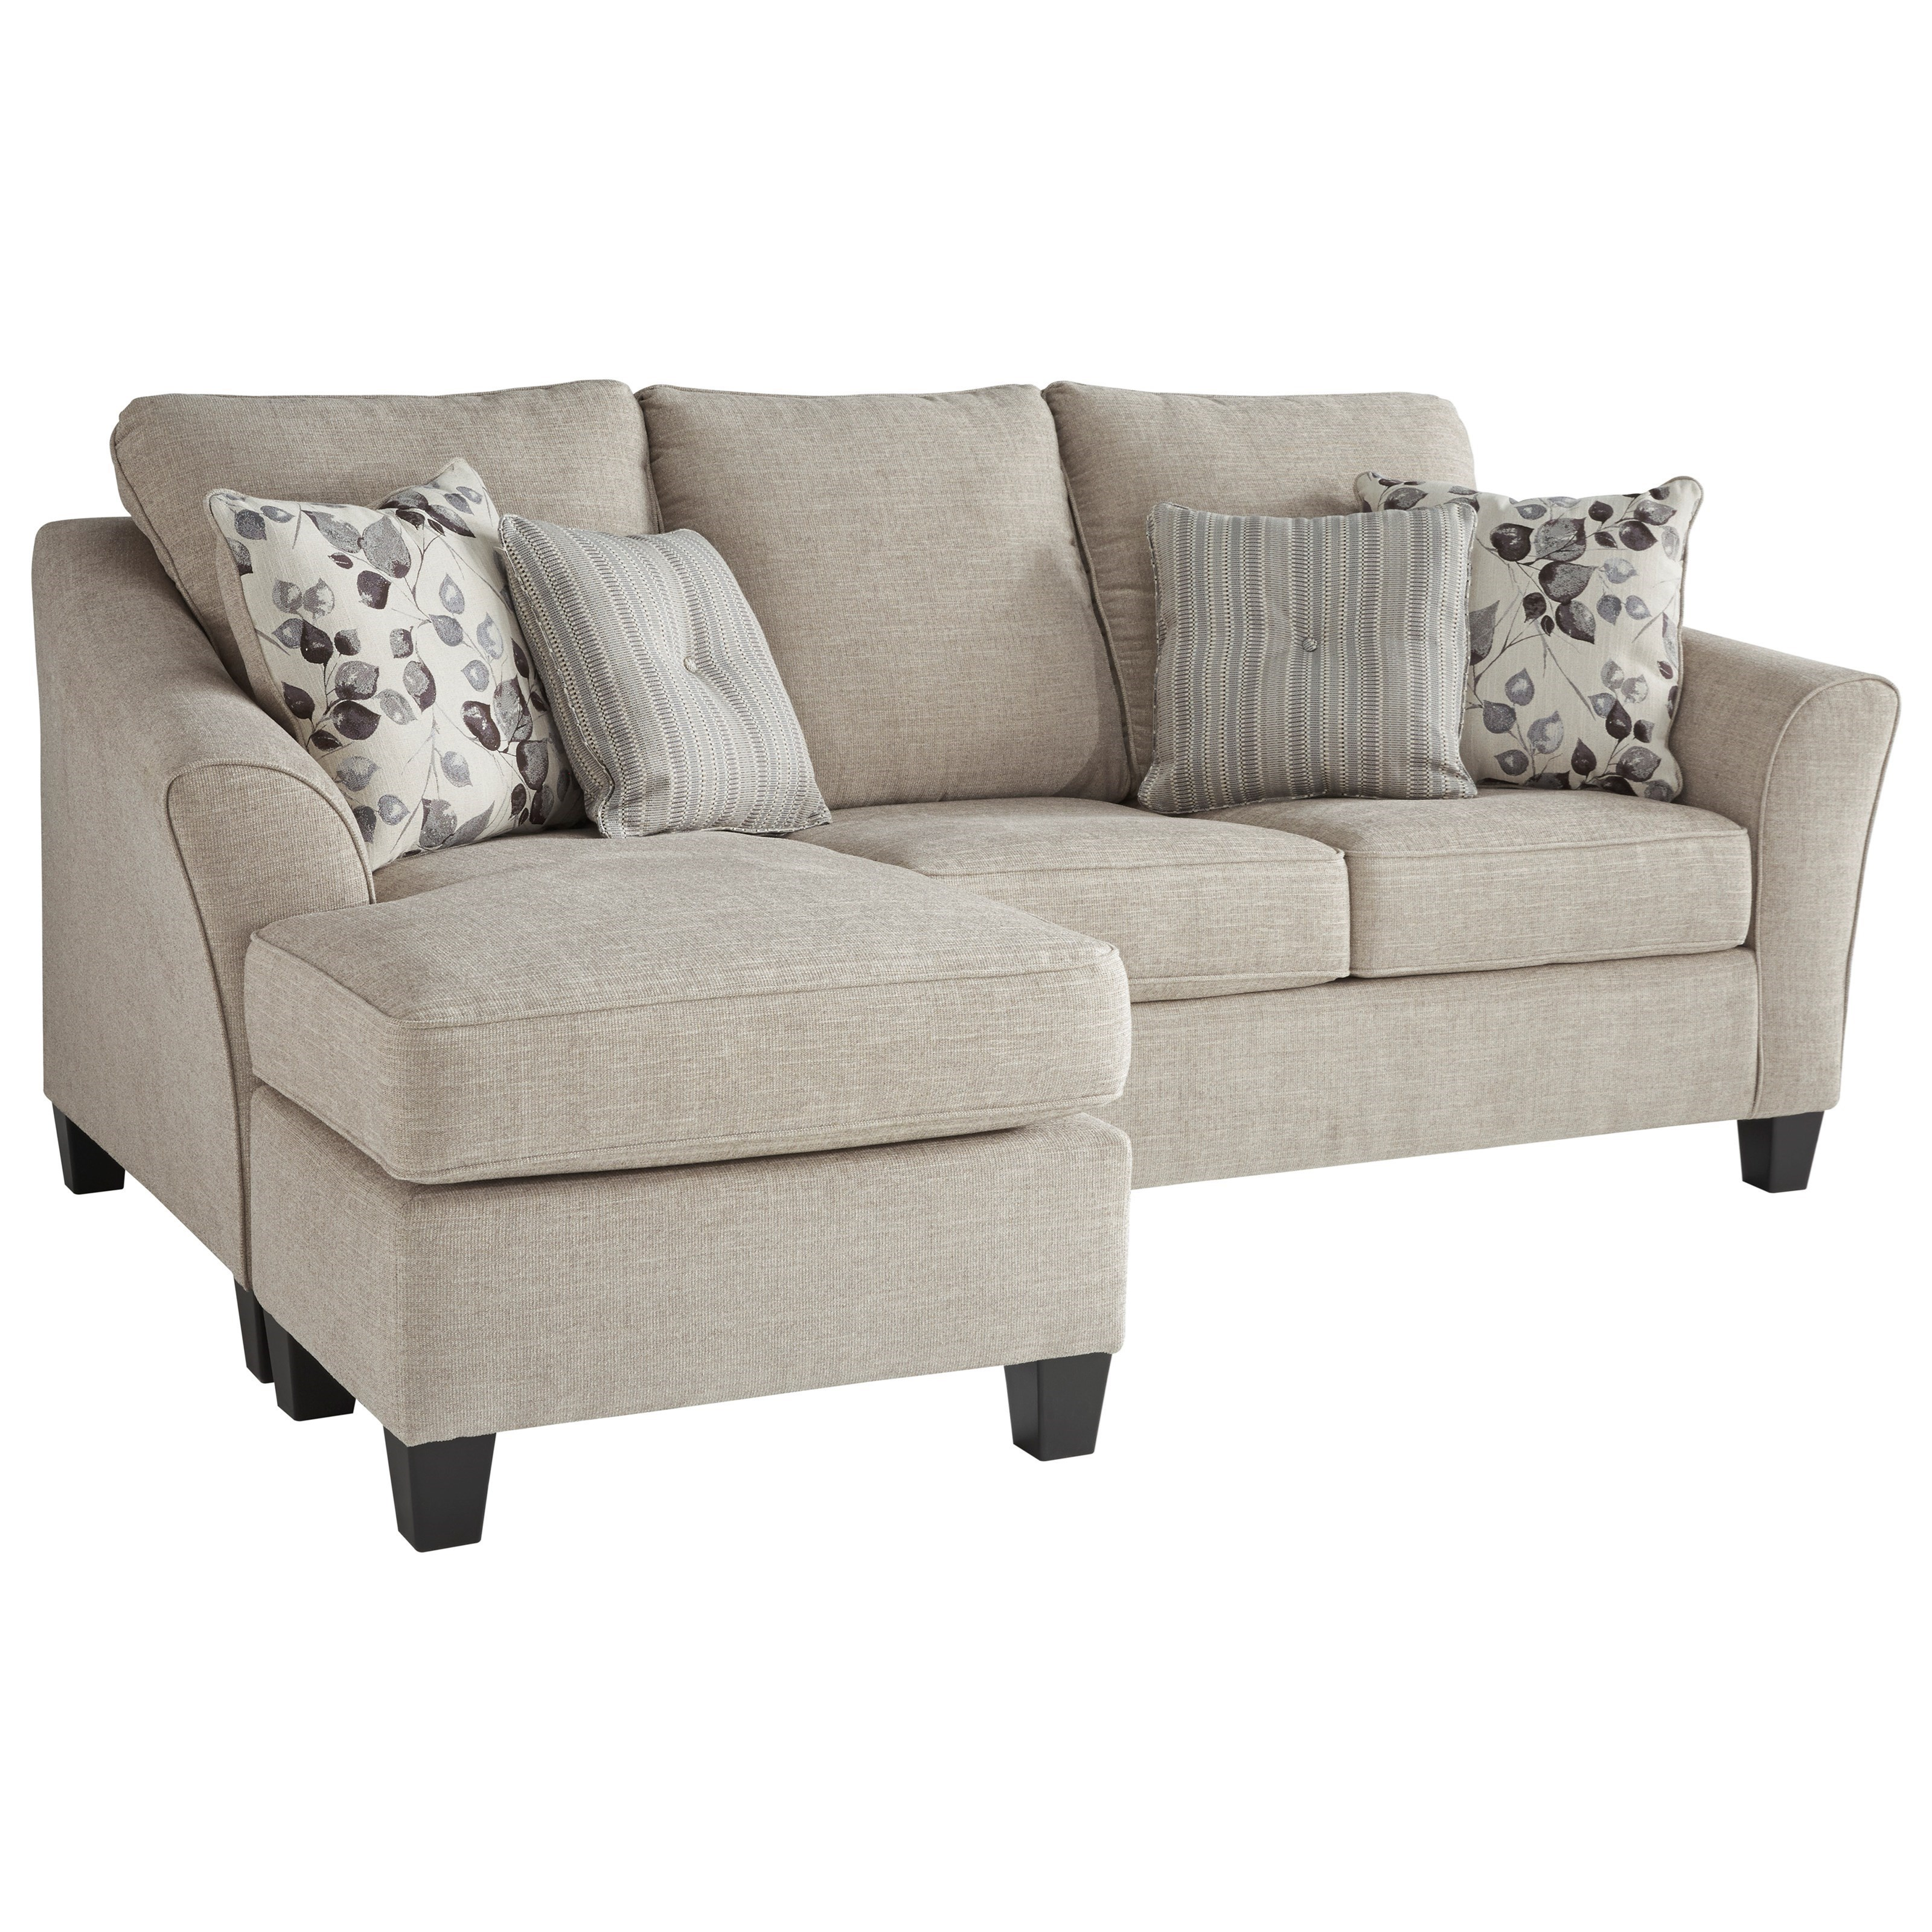 Sofa S Benchcraft Abney 4970118 Sofa Chaise With Flared Track Arms